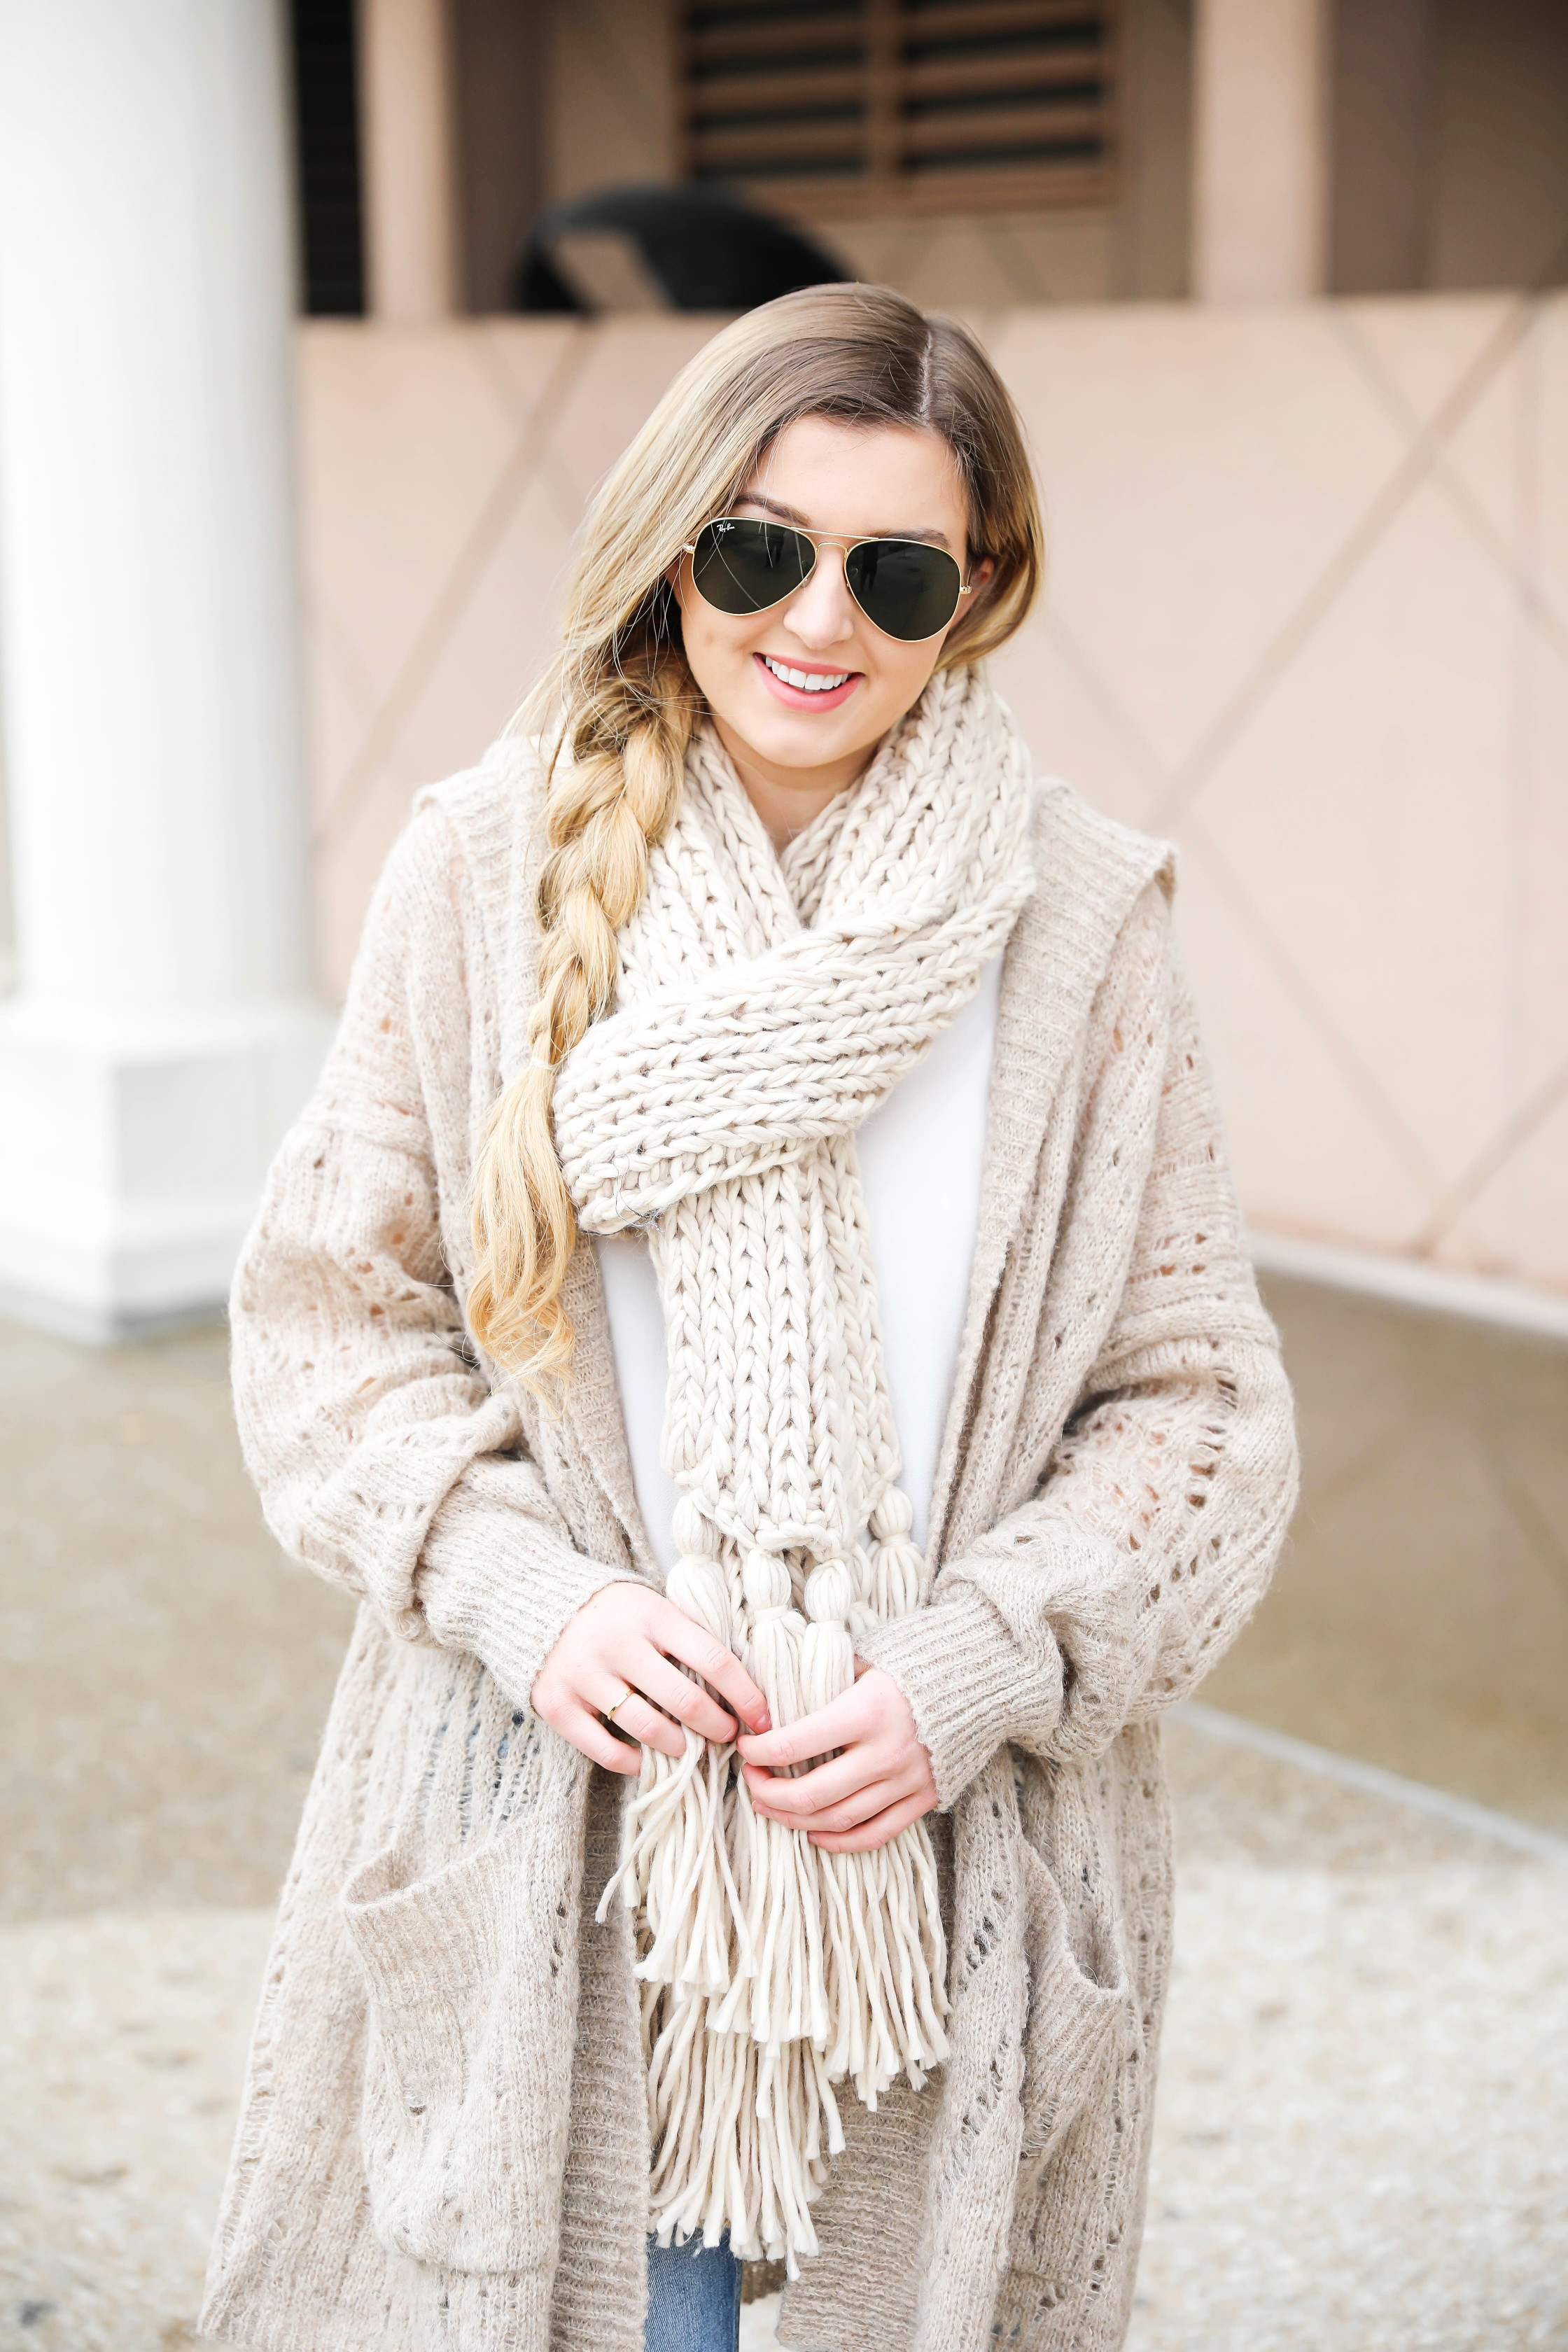 Hooded Free People cardigan! I love this knit cardigan paired with this cozy knit scarf! fit I paired this outfit with my mom jeans to finish the look! Details on fashion blog daily dose of charm by lauren lindmark